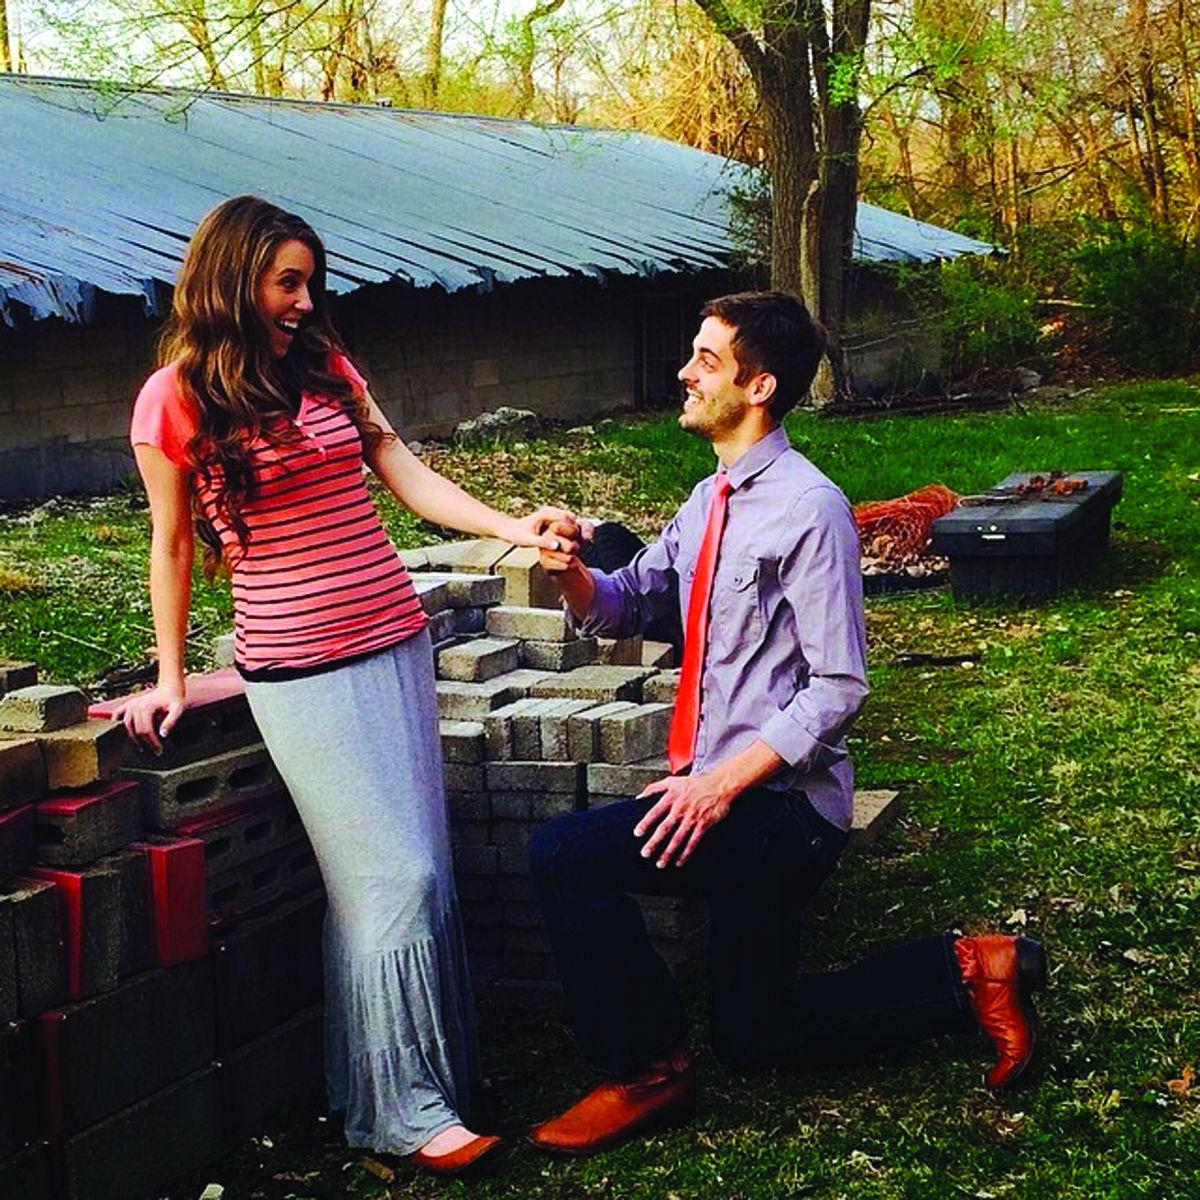 19 Kids And Counting S Jill Duggar And Derick Dillard: Former Pistol Pete Gets His Girl